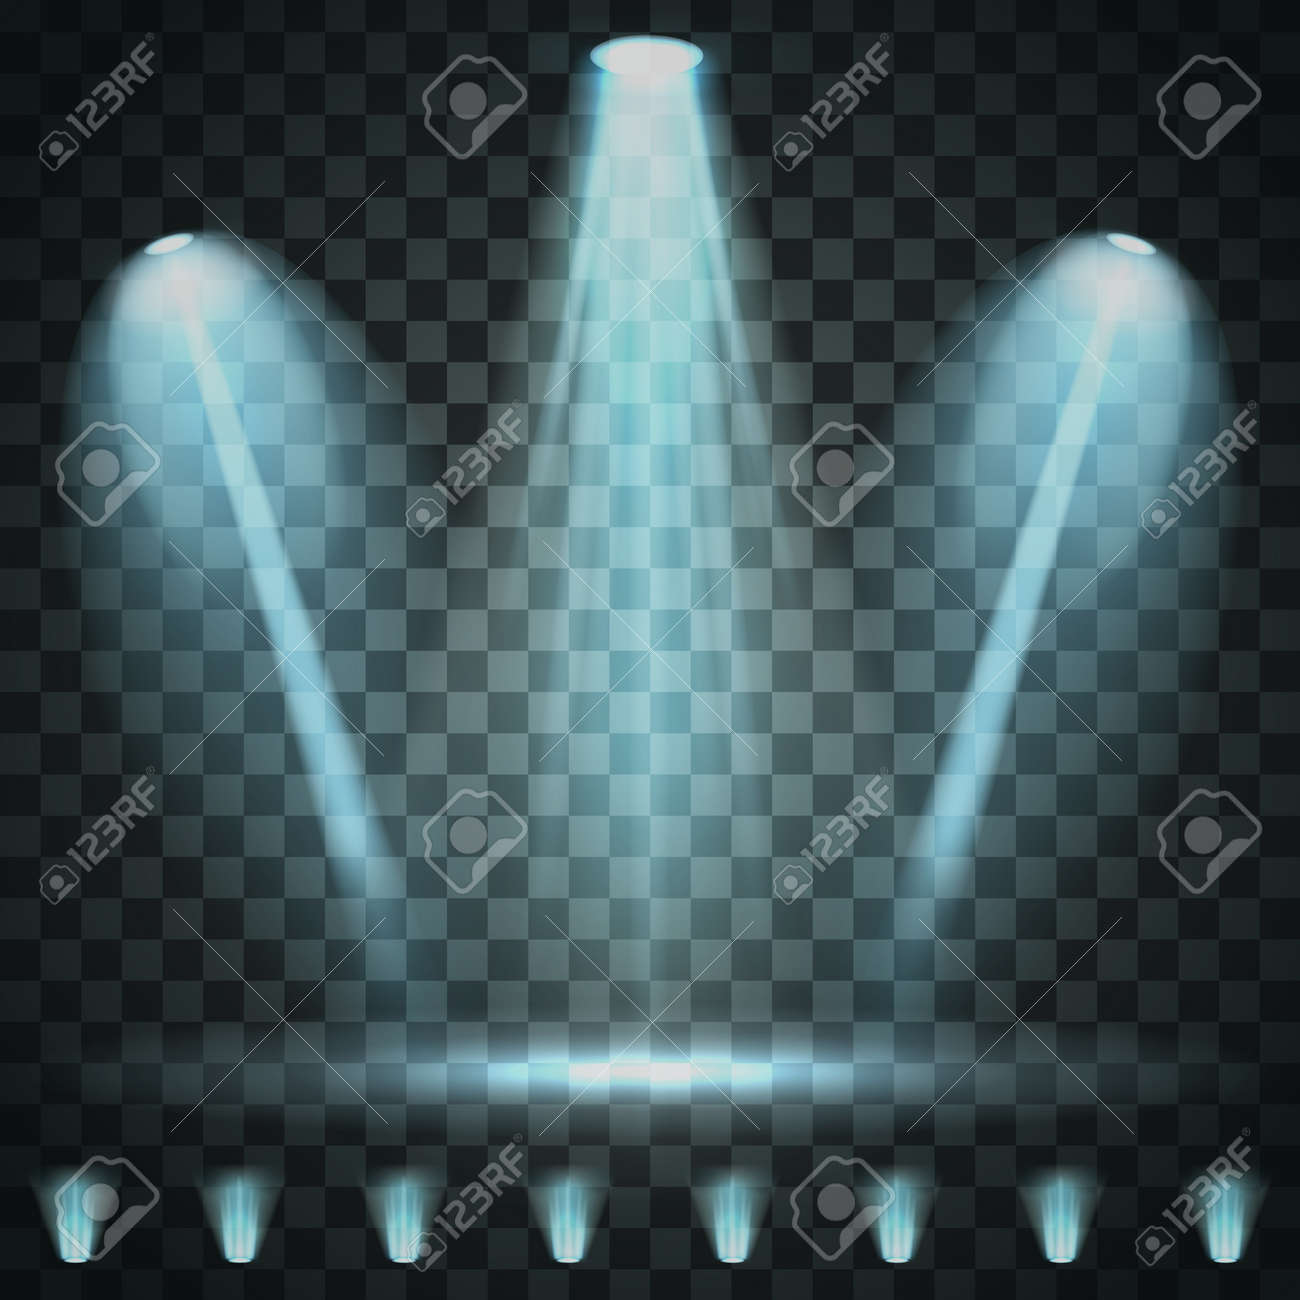 Showtime background illuminated by spotlights - 168266703